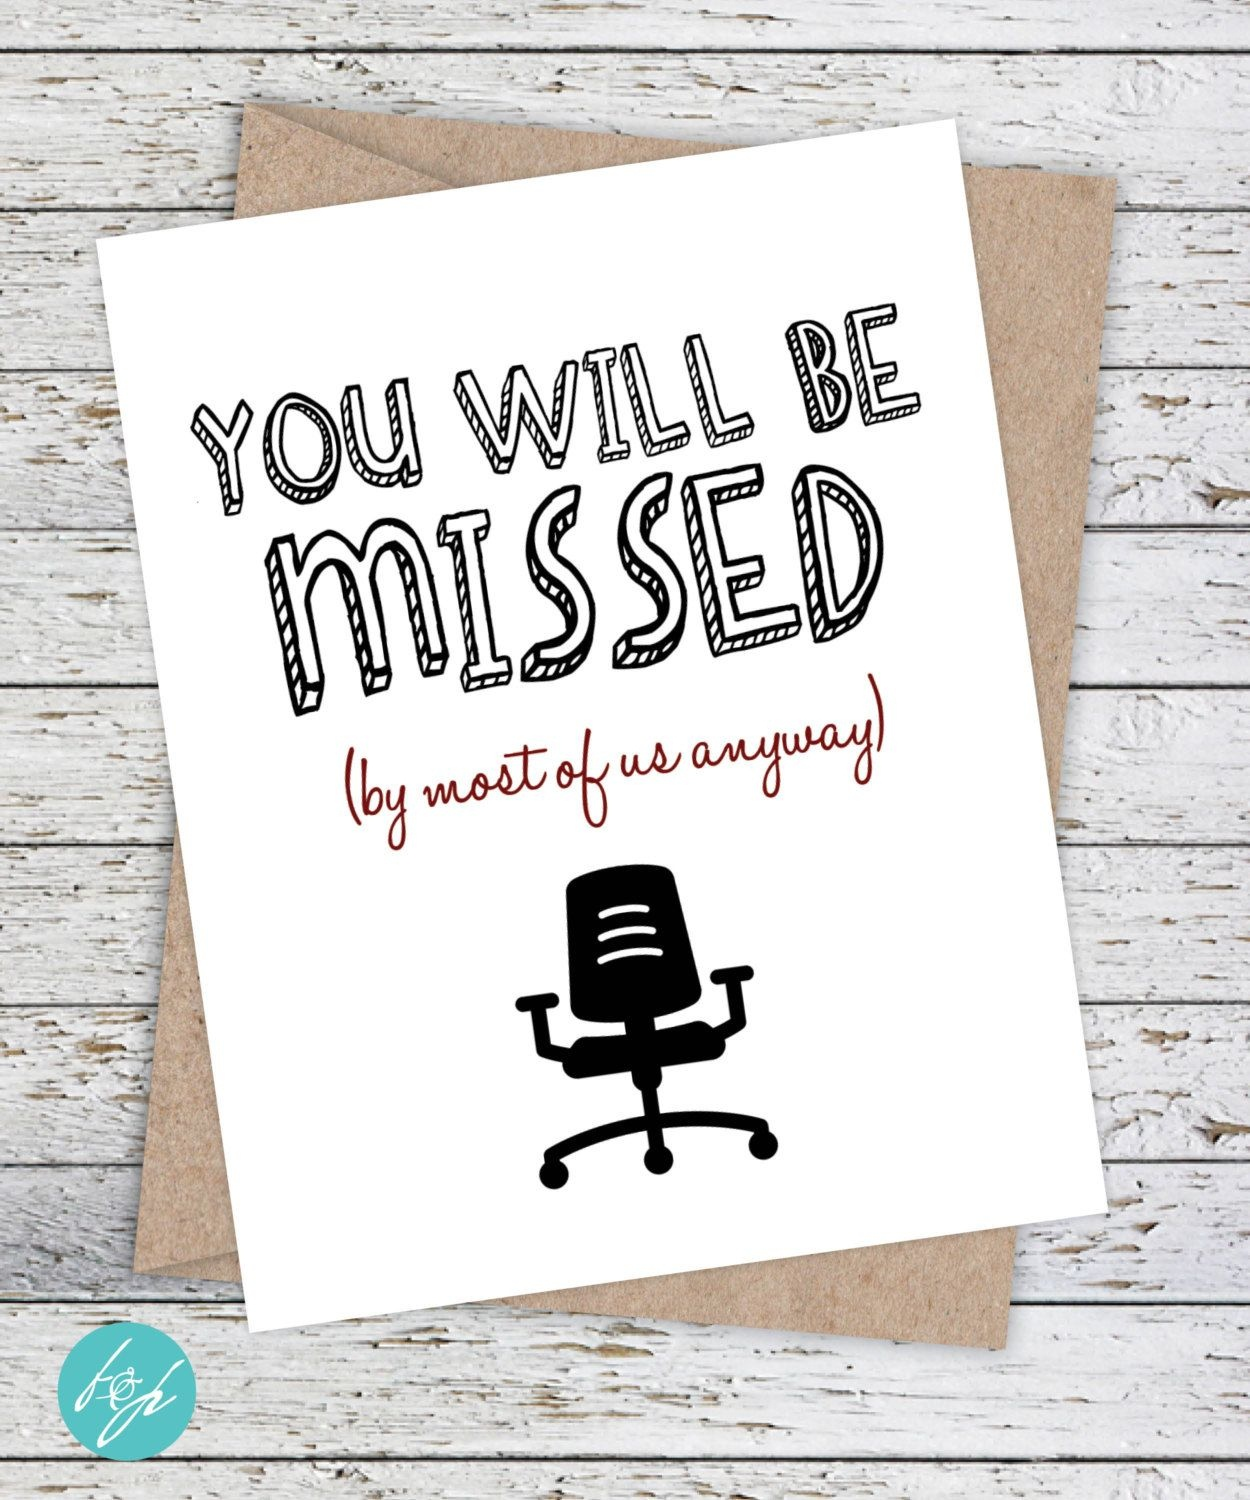 Funny Coworker Card,flairandpaper On Etsy You Will Be Missed (By - We Will Miss You Cards For Coworker Printable Free